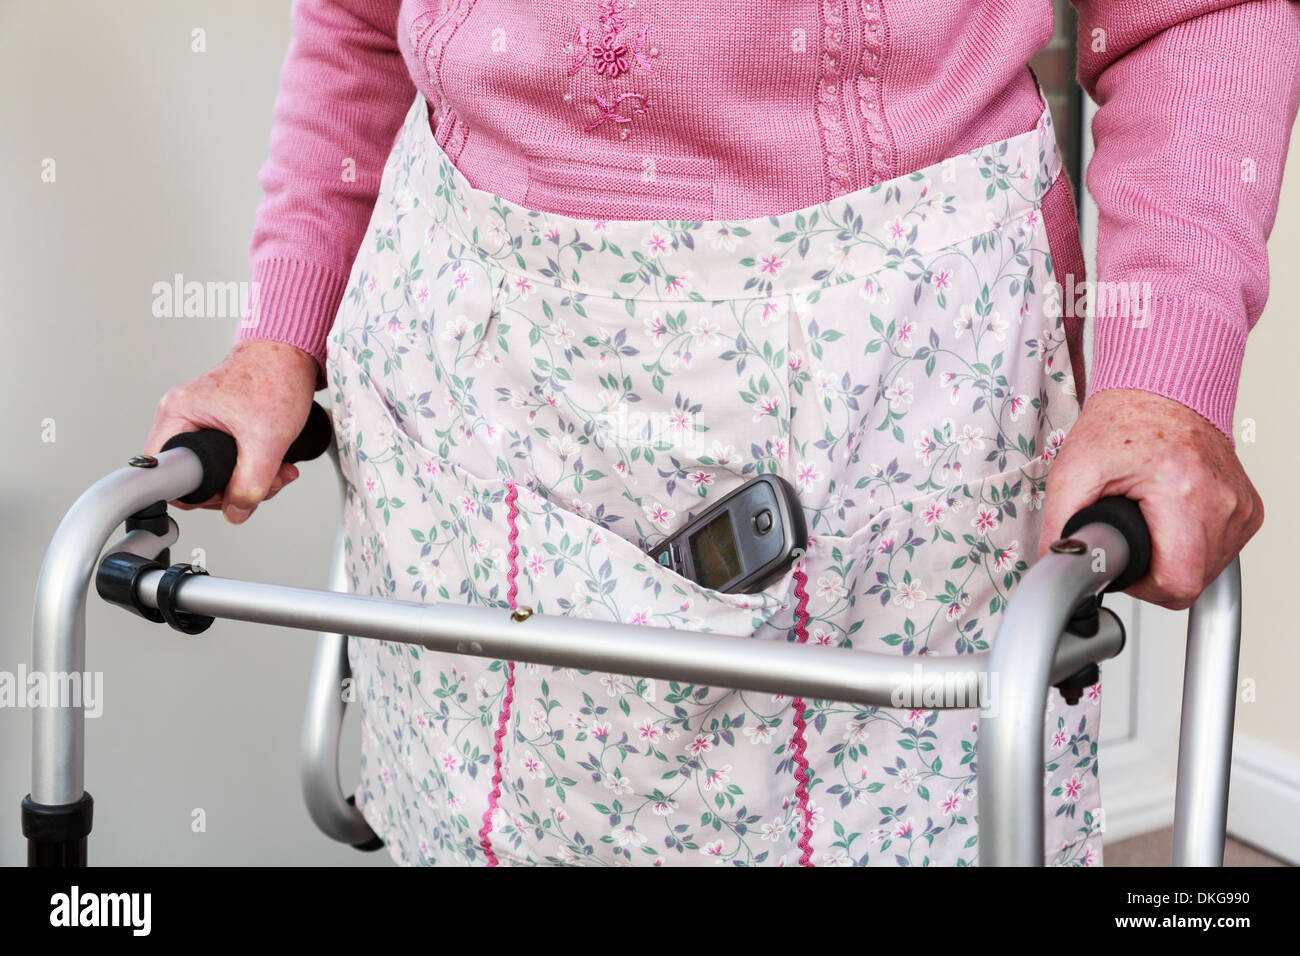 Elderly senior woman carrying a cordless phone handset in an apron pocket using a walker for support standing. England, UK, Britain - Stock Image